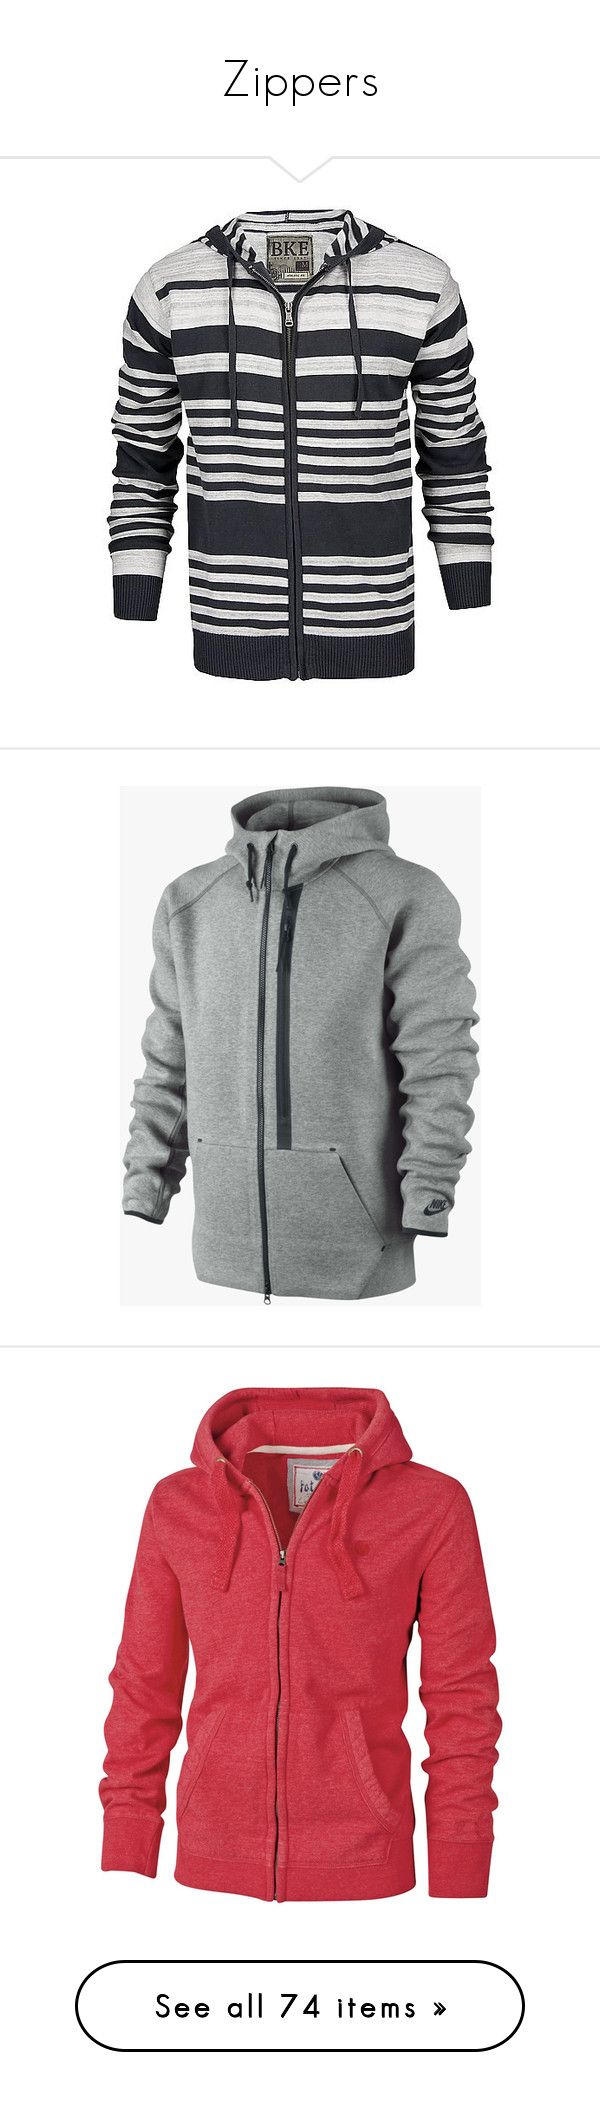 """Zippers"" by curiousgamer ❤ liked on Polyvore featuring men's fashion, men's clothing, men's hoodies, airforce, mens sweatshirts and hoodies, mens zip up hoodies, mens hoodies, men's activewear, men's activewear jackets and mens jerseys"